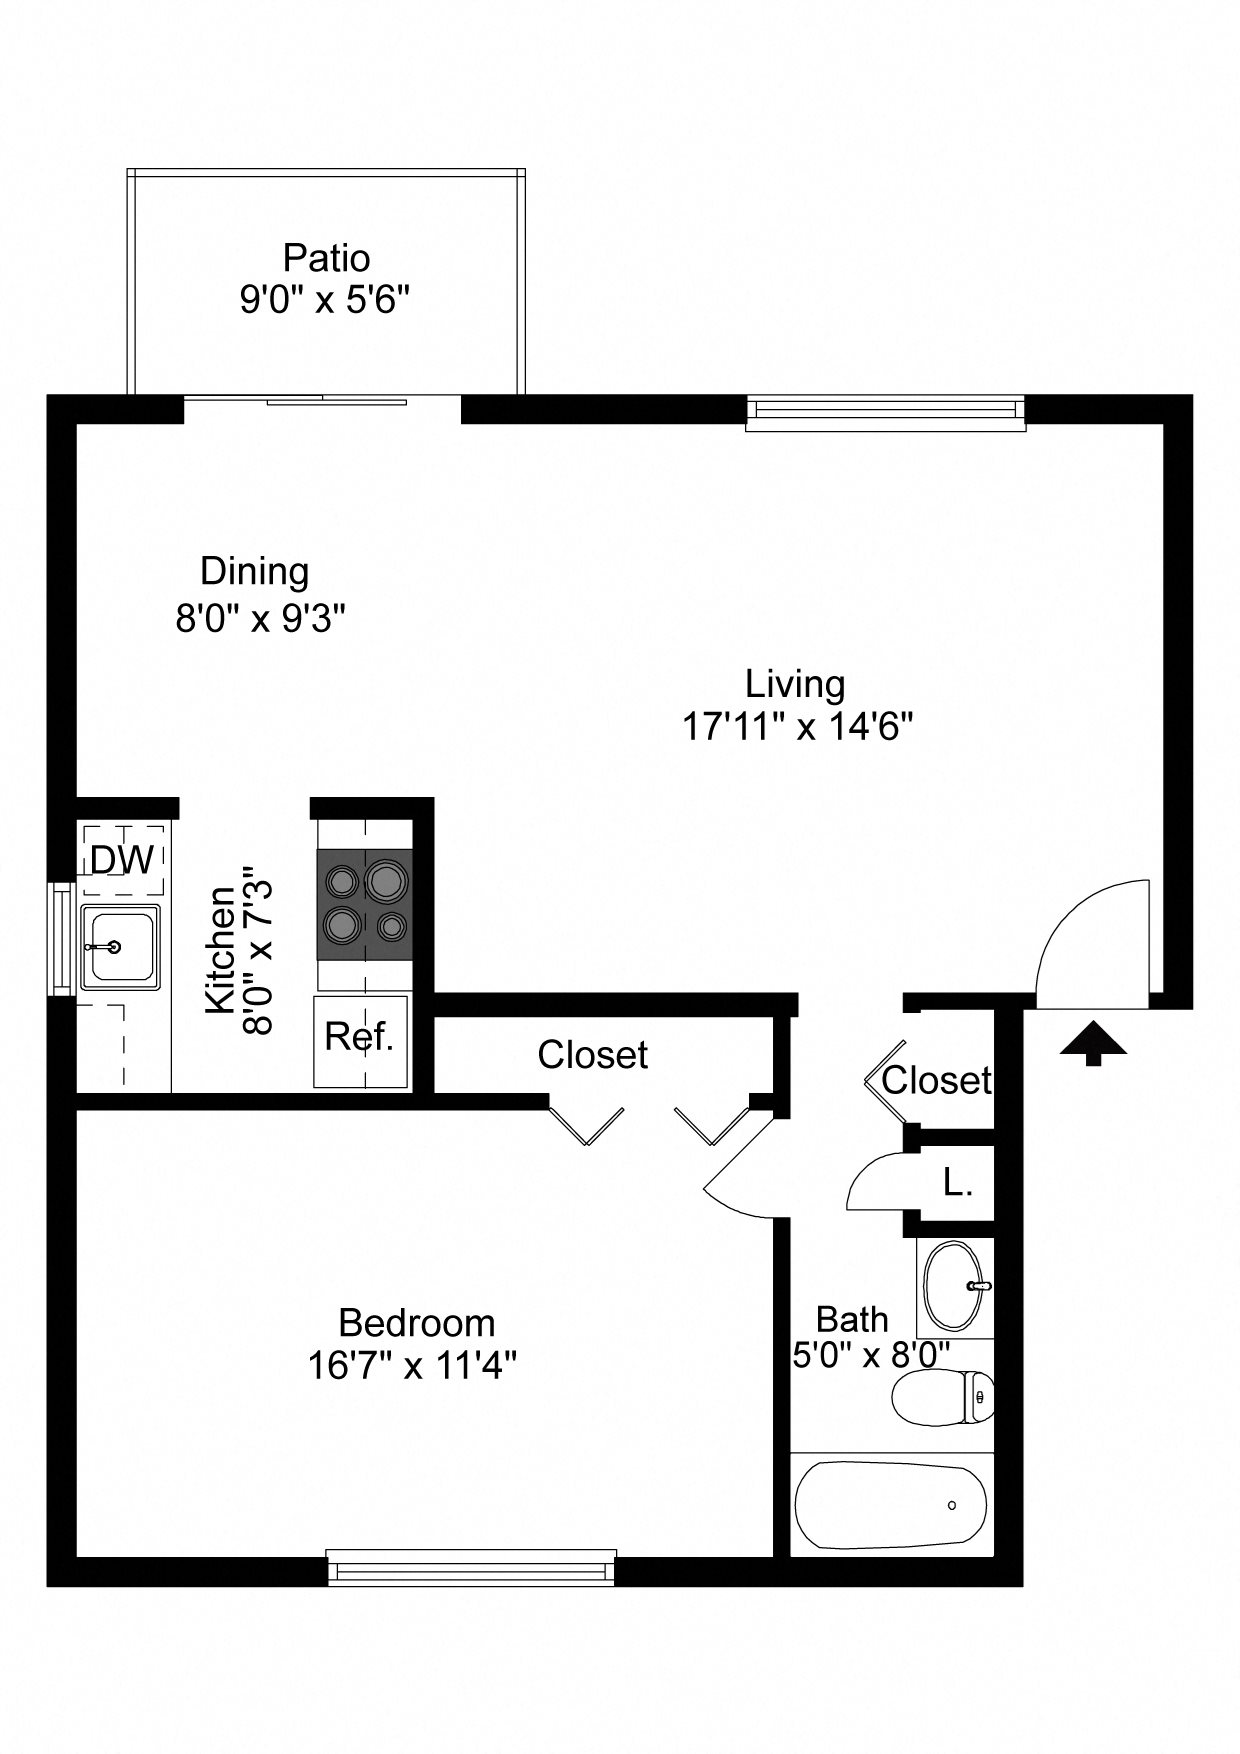 floor plans of georgetown apartments in williamsville ny